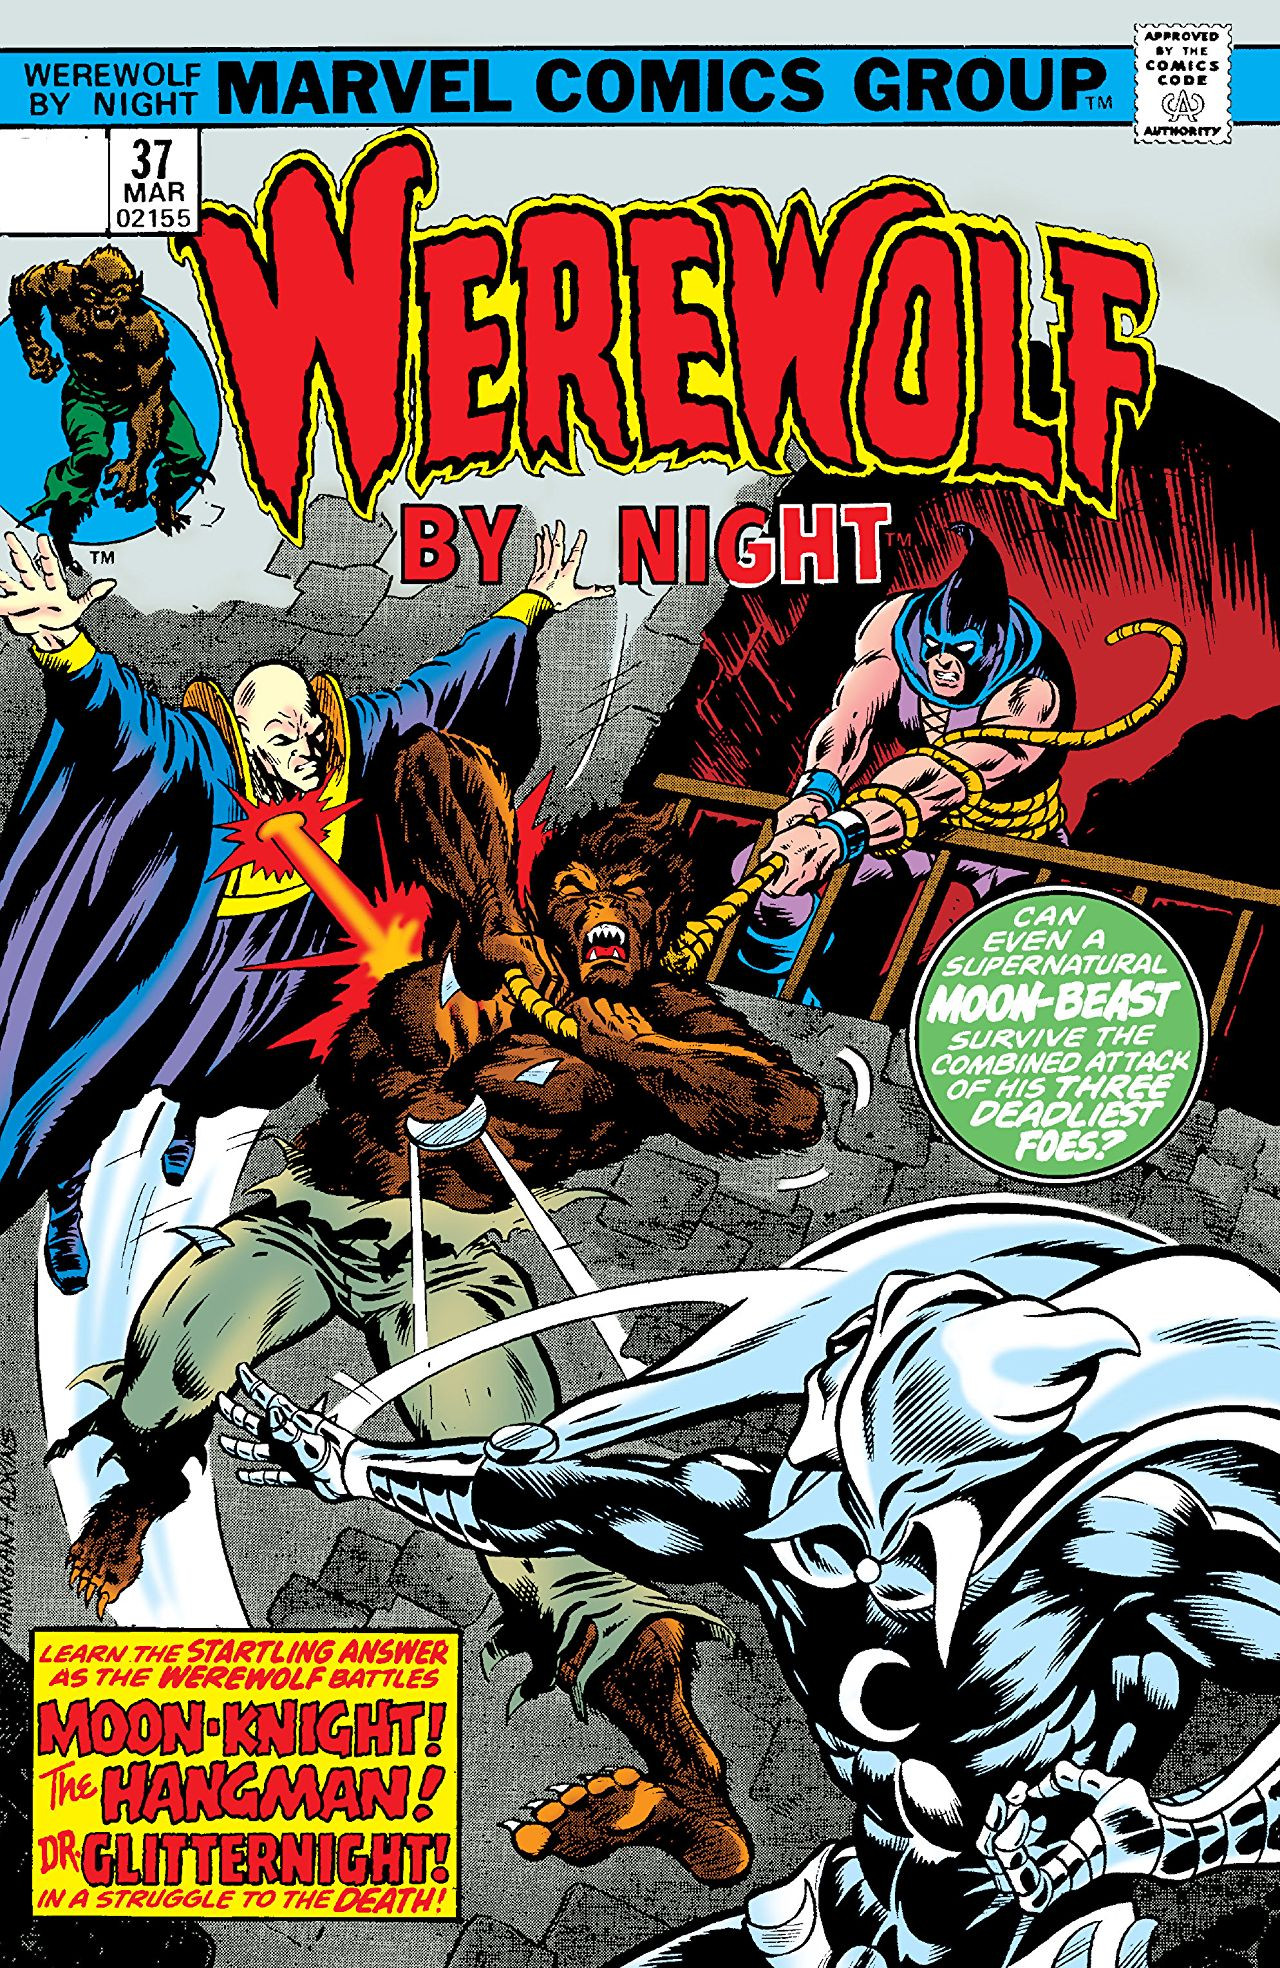 Werewolf by Night Vol 1 37